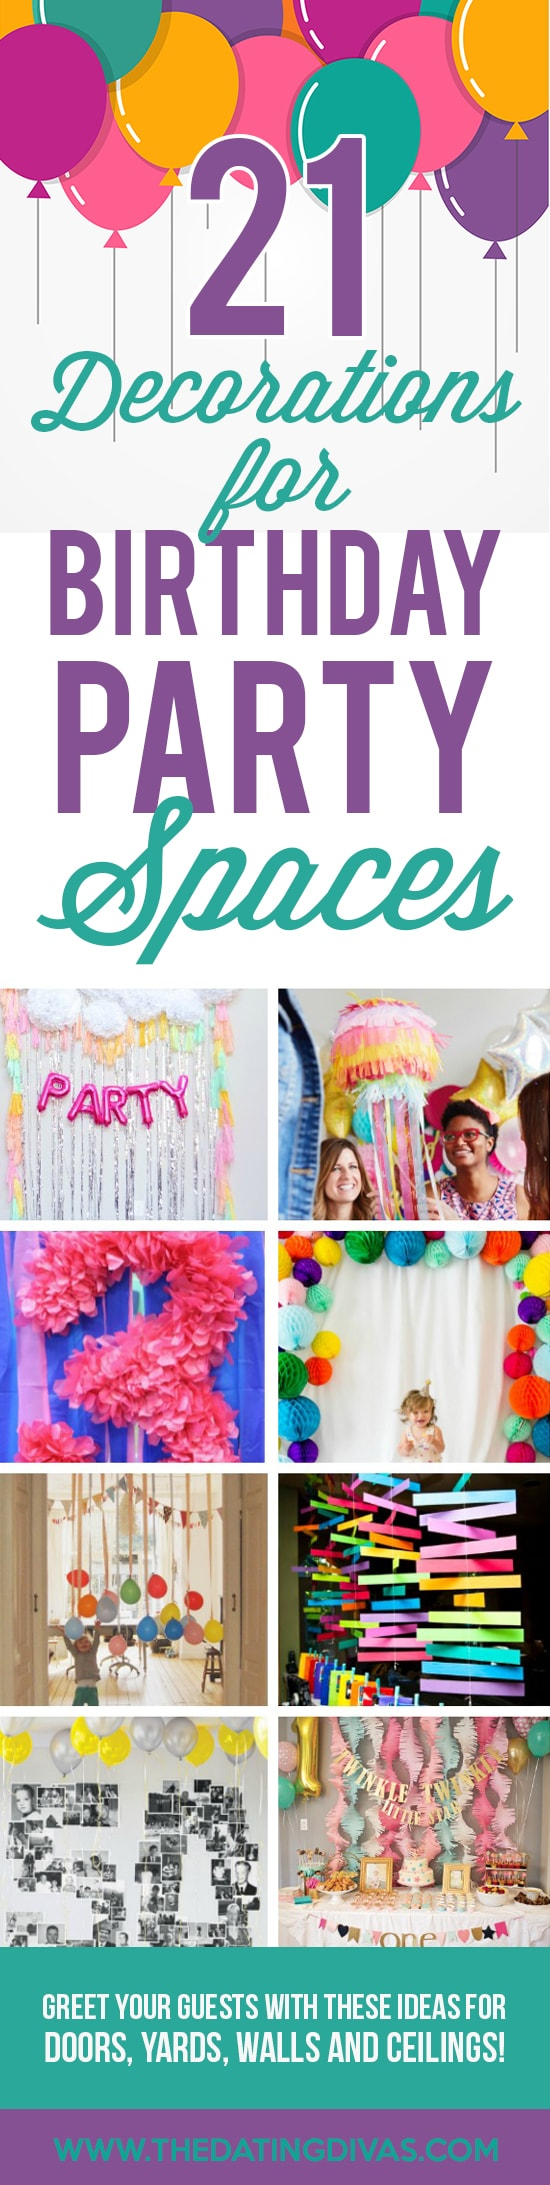 Ways to Decorate for a Birthday Party